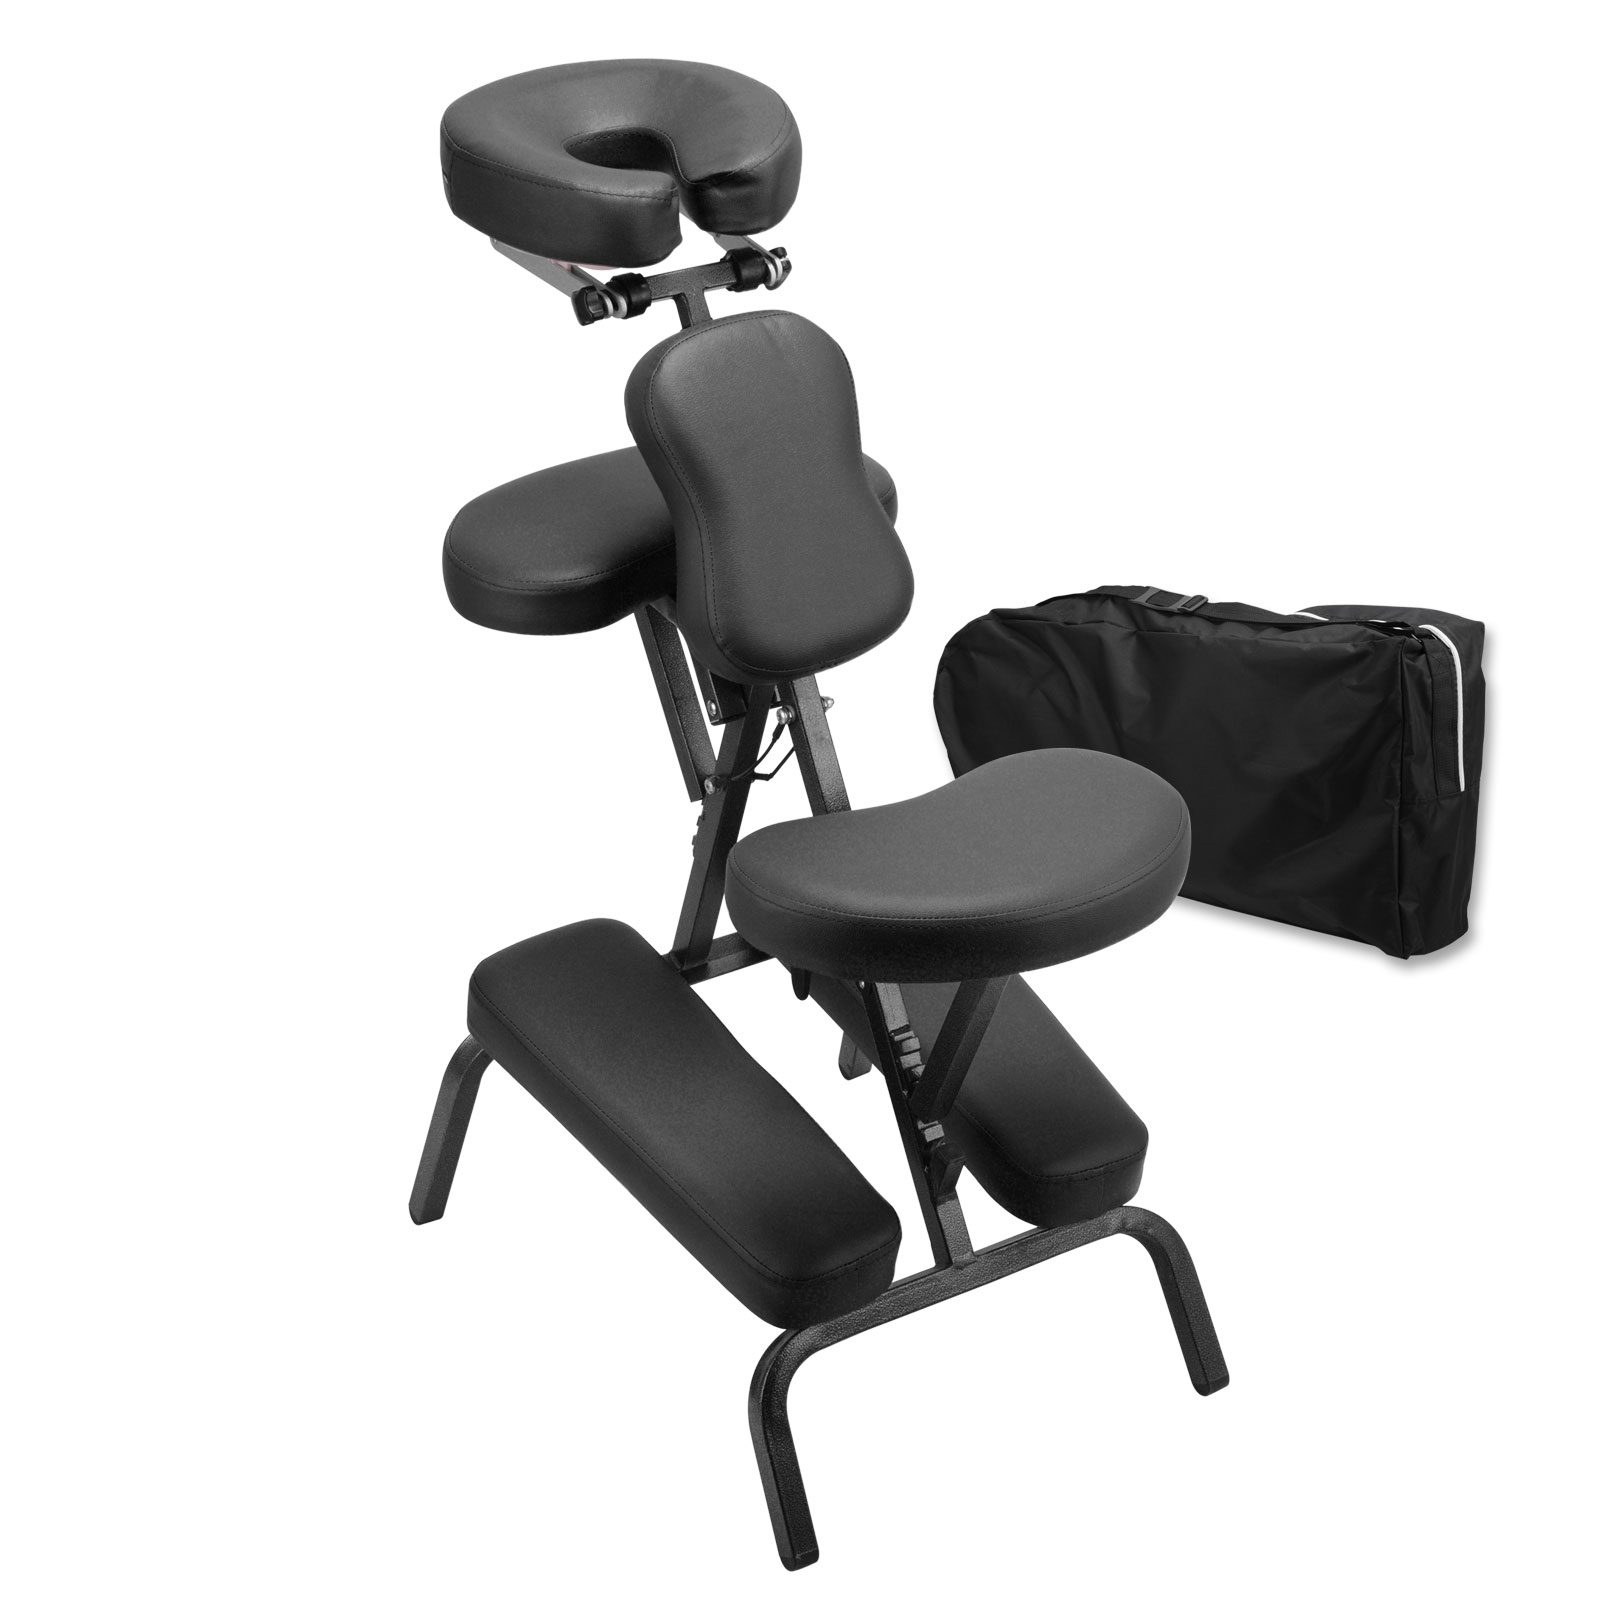 Portable Tattoo Chair Indian Head Massage Chair Stool Beauty Tattoo Couch